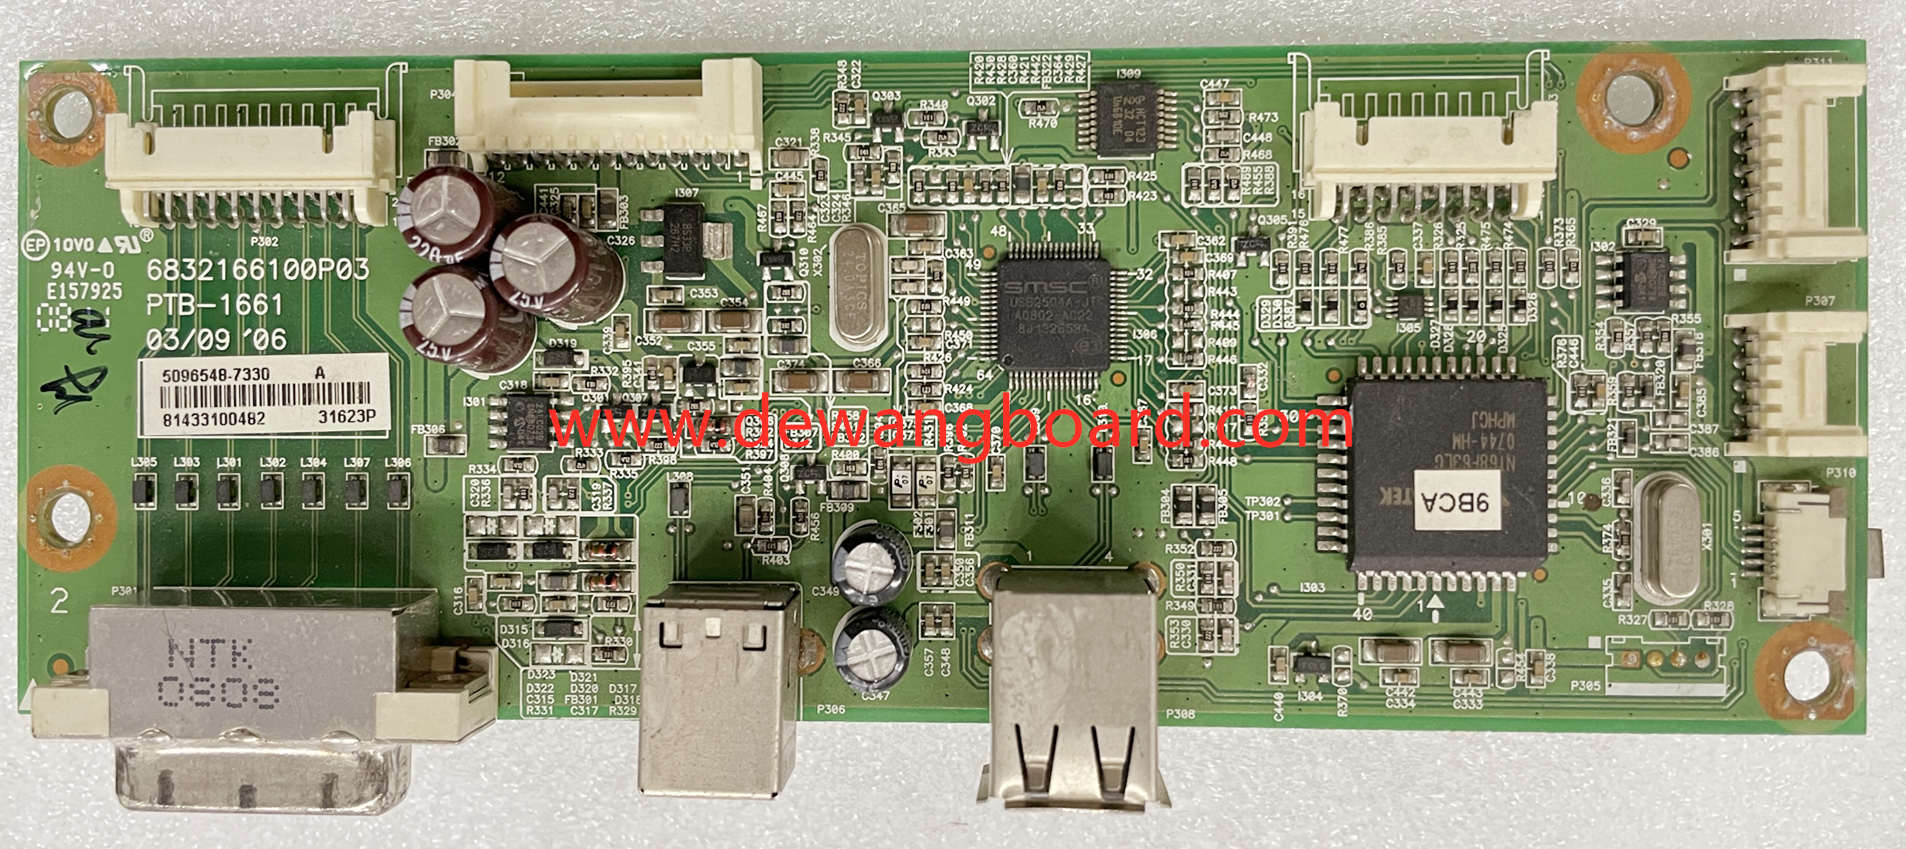 6832166100P03 PTB-1661 DELL 3007WFPHC driver/ main board